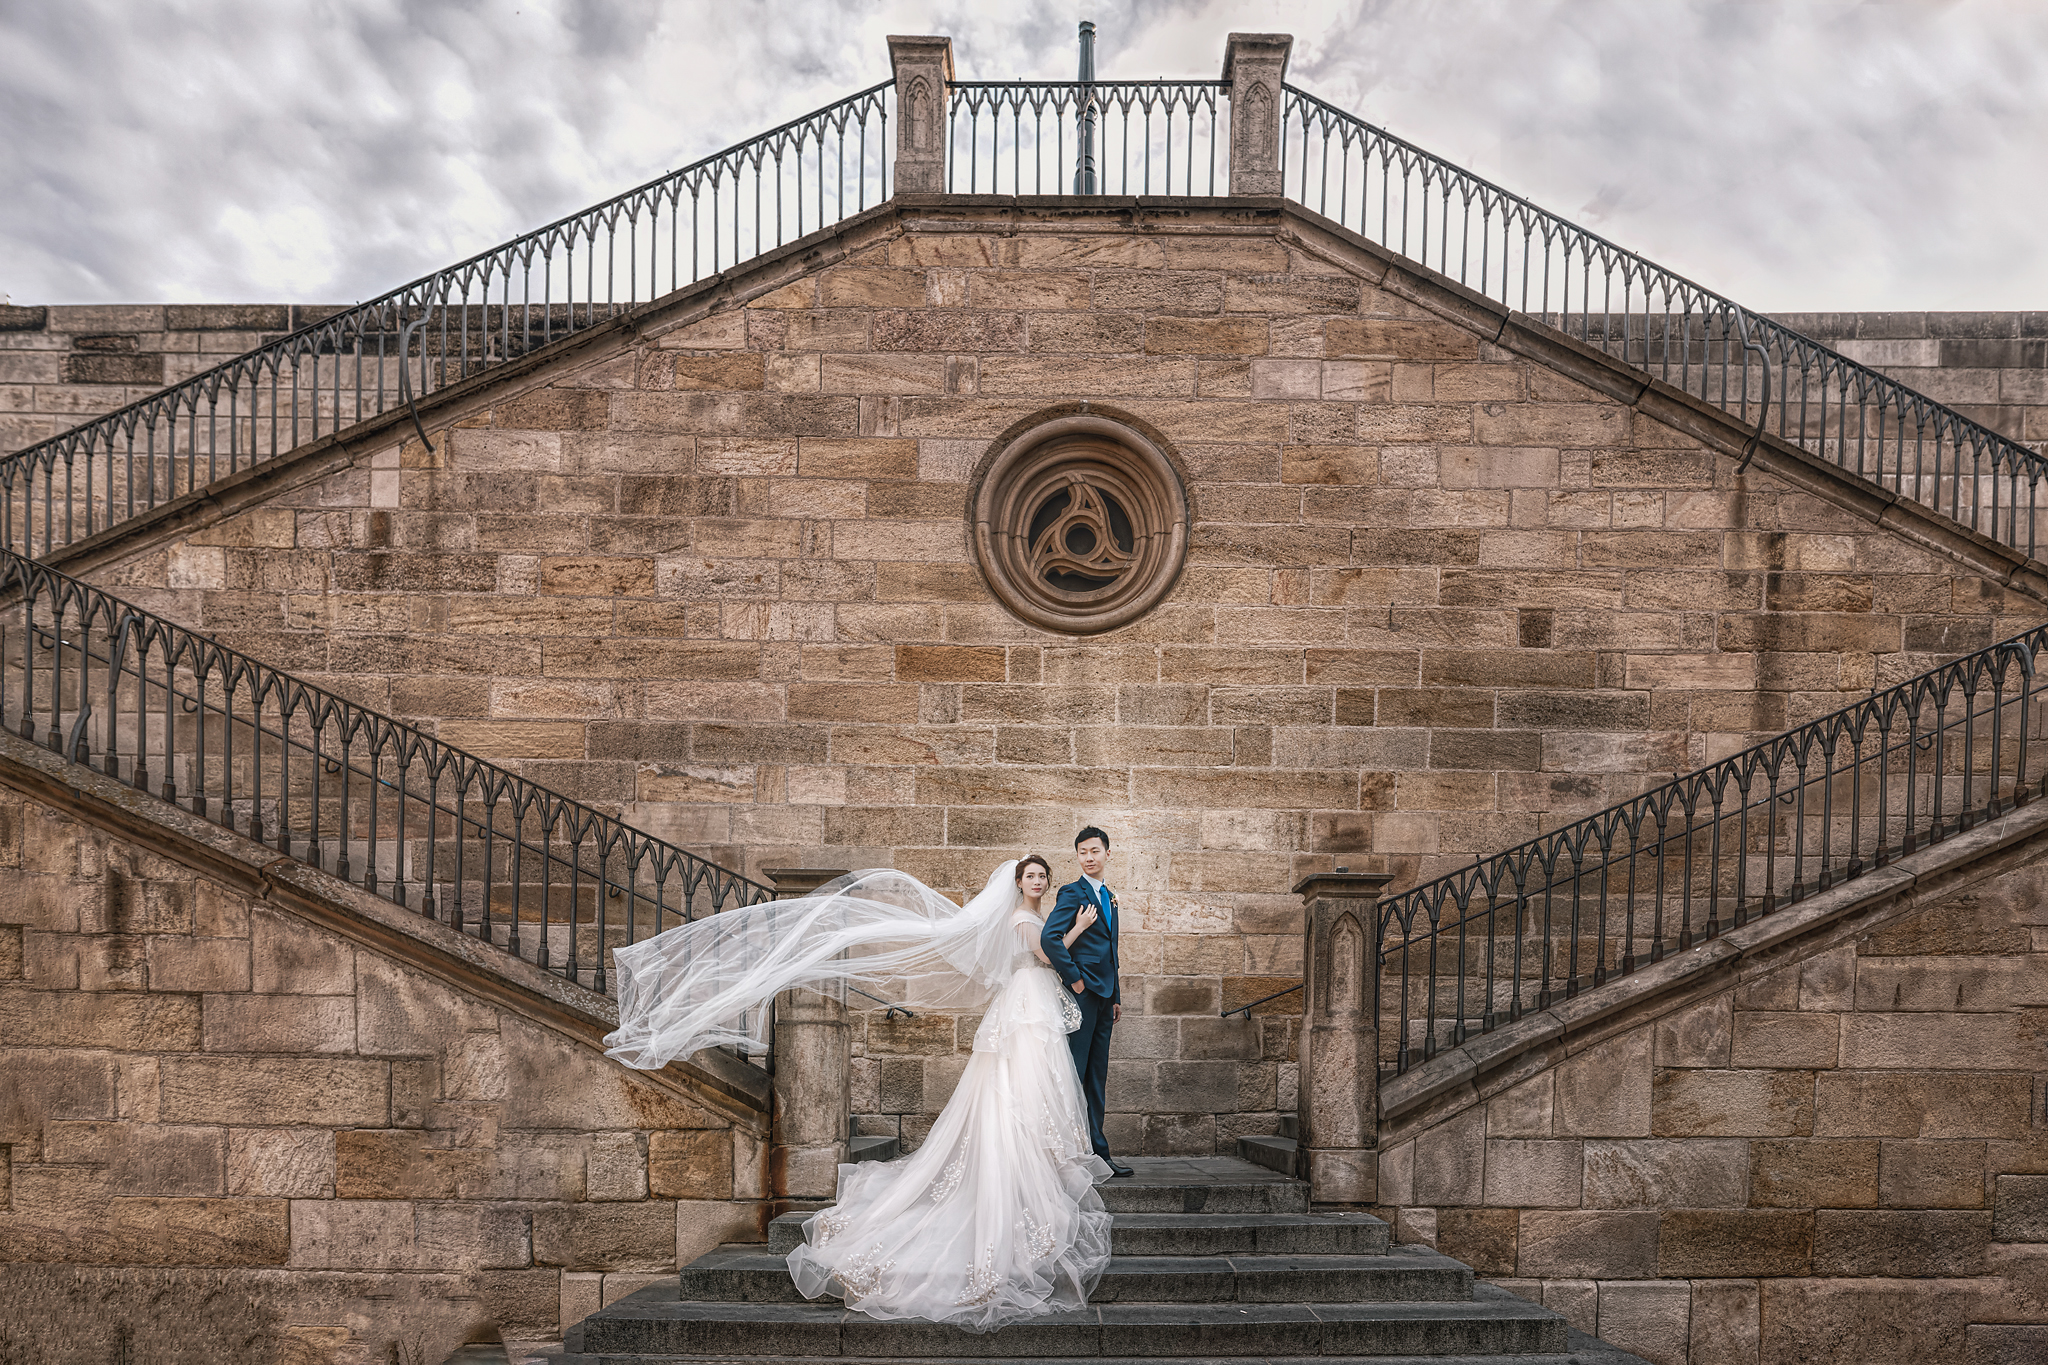 Fashionable couple portrait, bride with flowing veil on elaborate stone stairway by Edwin Tan Photography